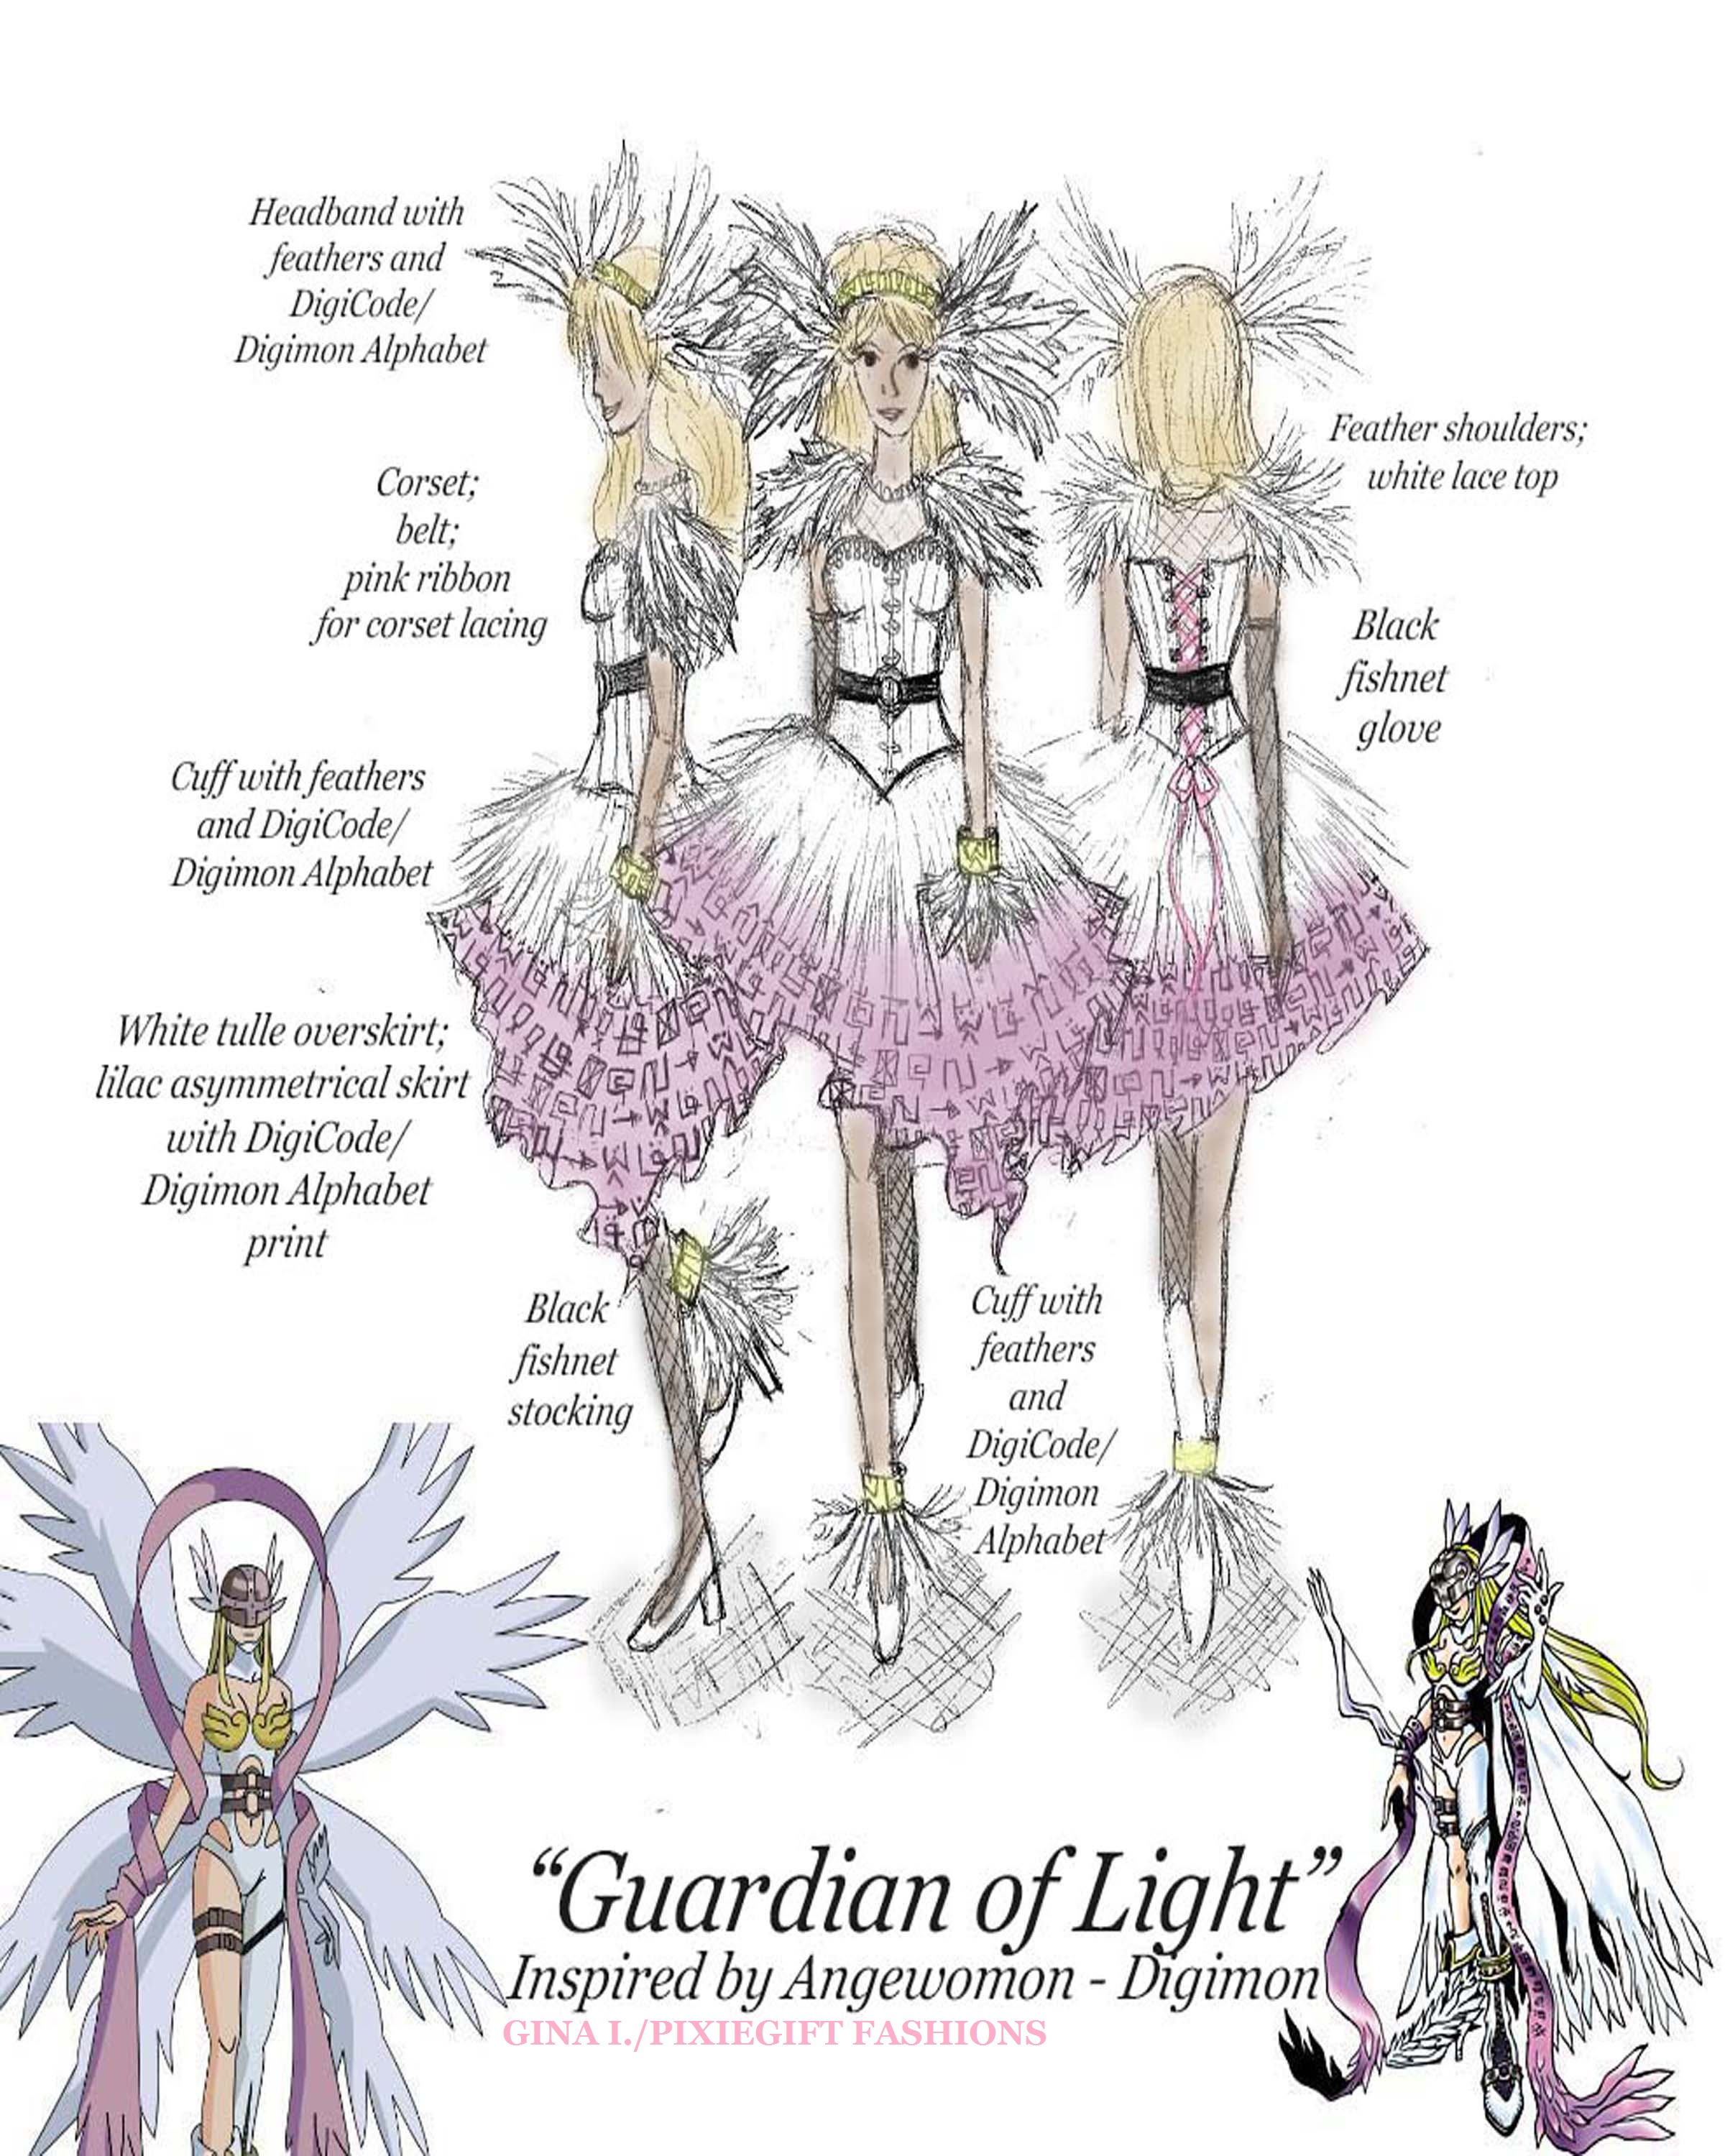 Guardian of Light inspired by Angewomon - Digimon by Pixiegift Fashions